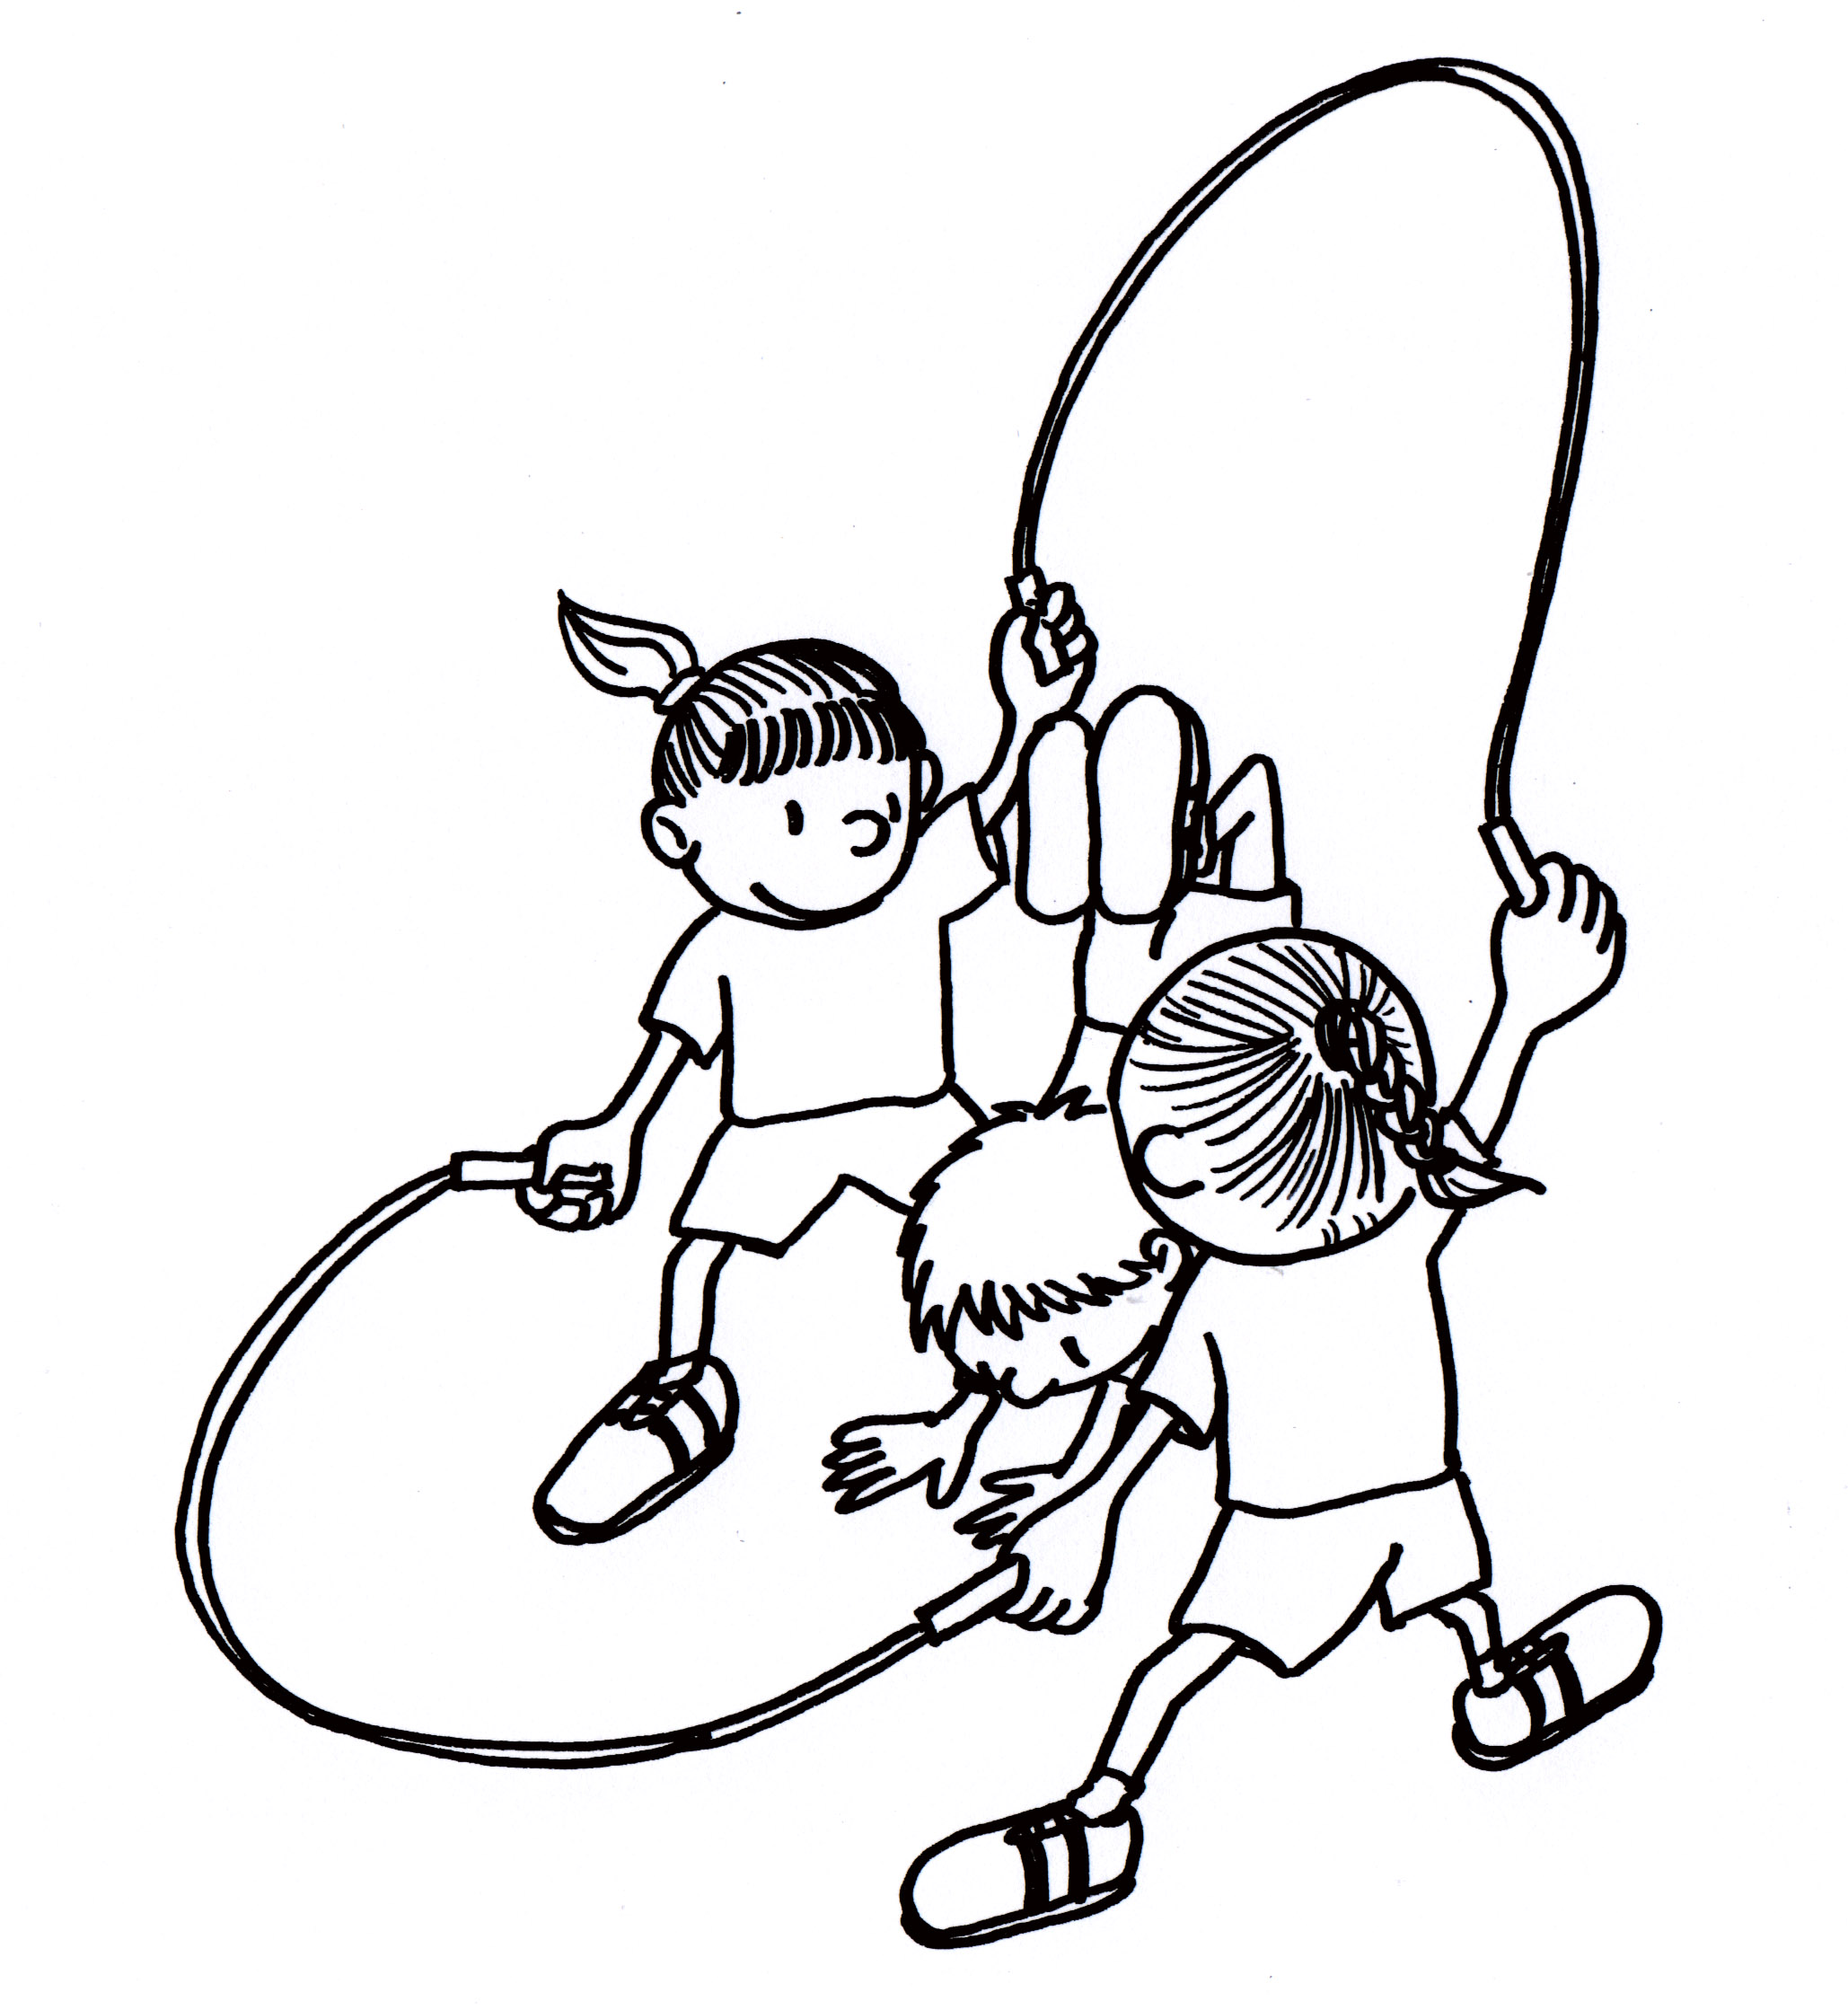 Double Dutch Jump Rope Sketch Coloring Page